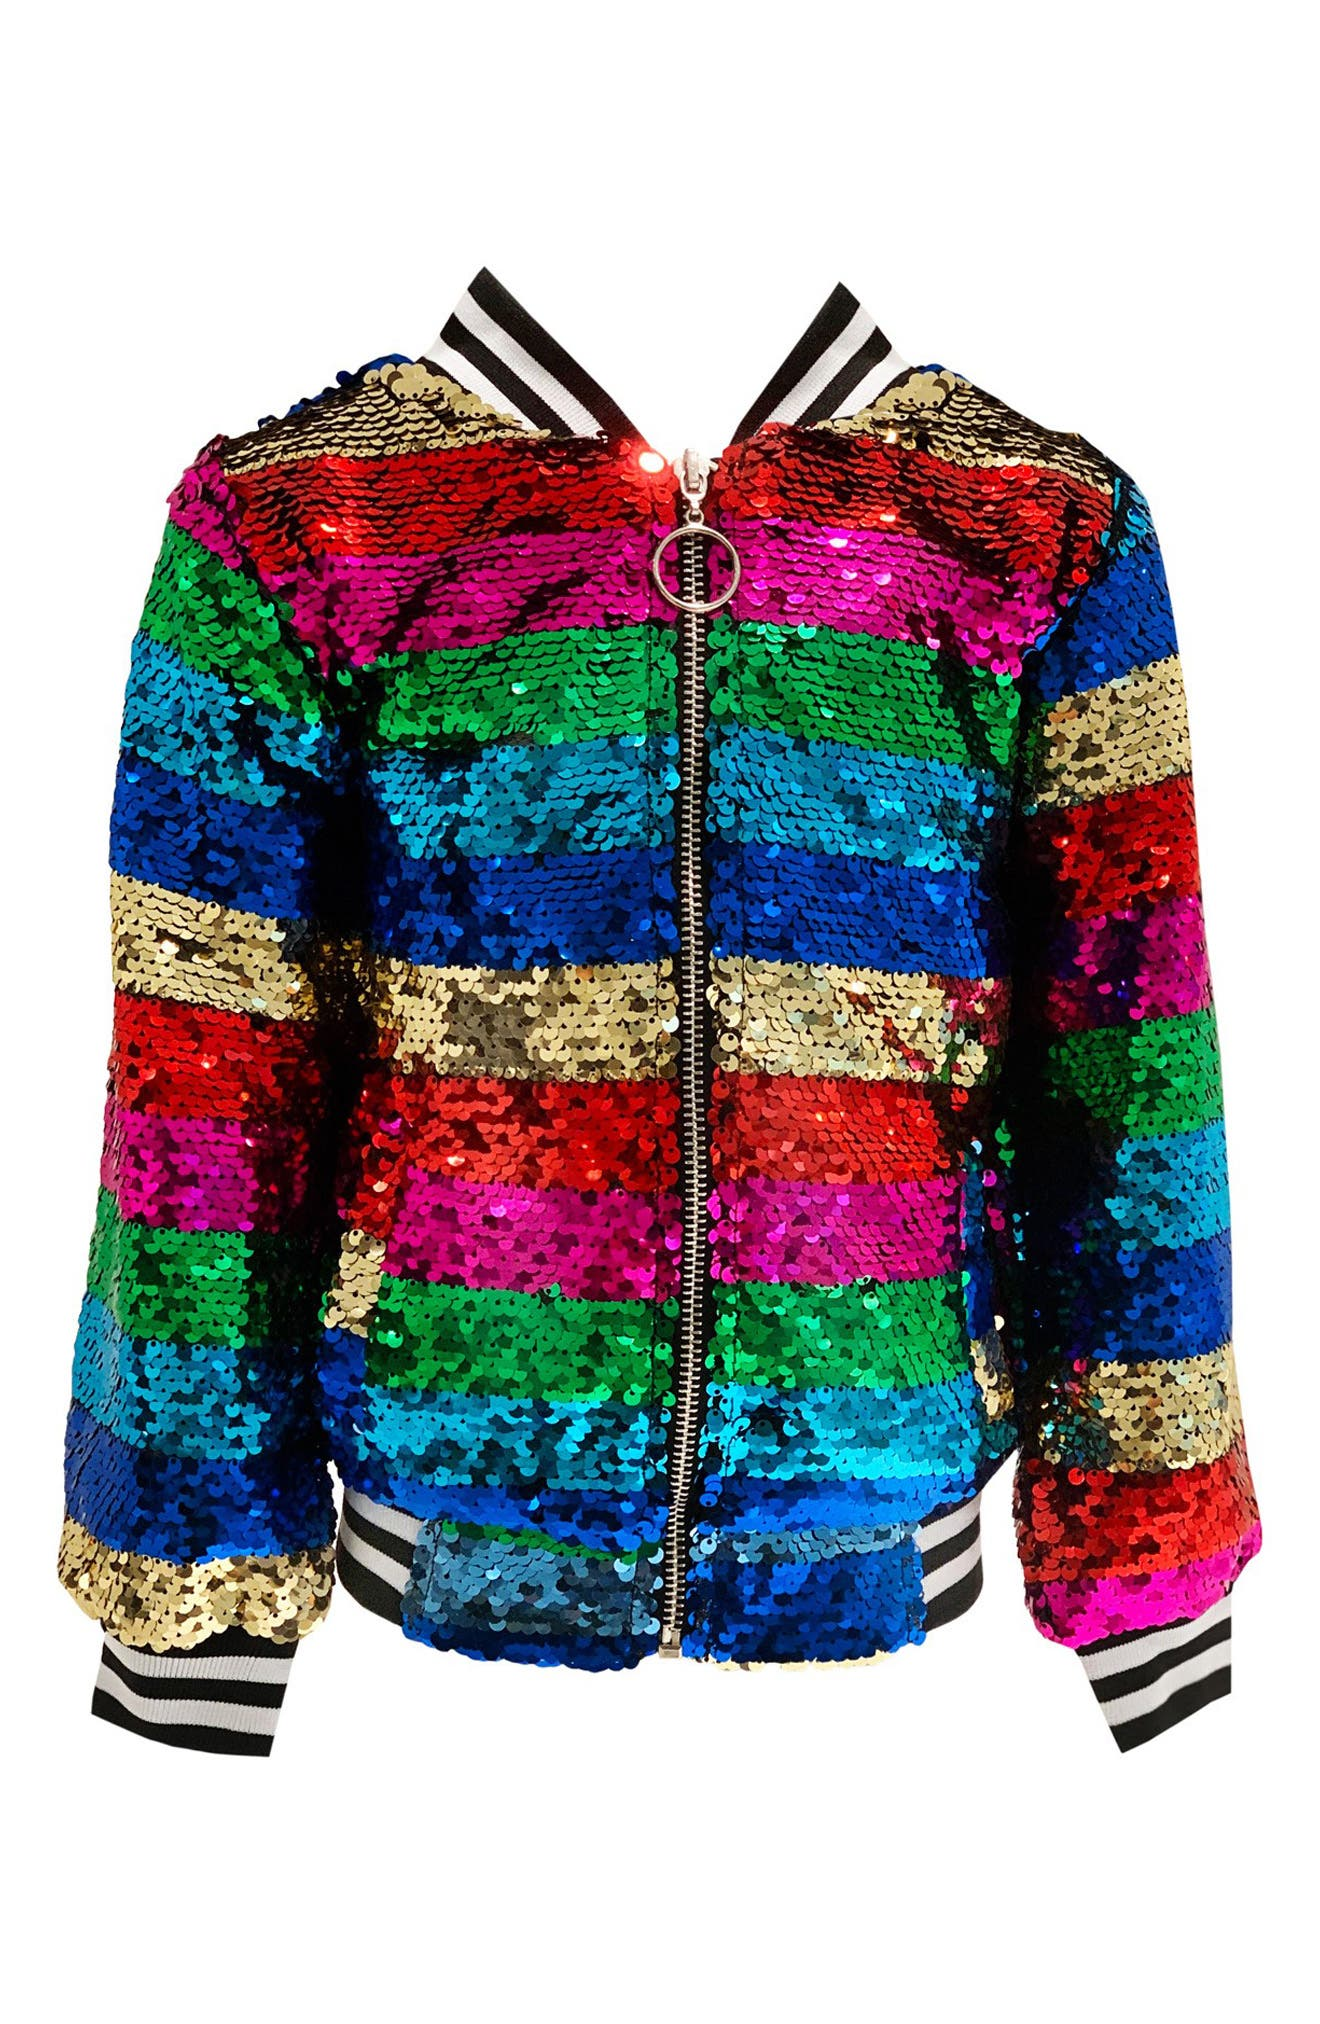 Toddler Girls Lola  The Boys Chasing Rainbow Sequin Jacket Size 2T  Pink